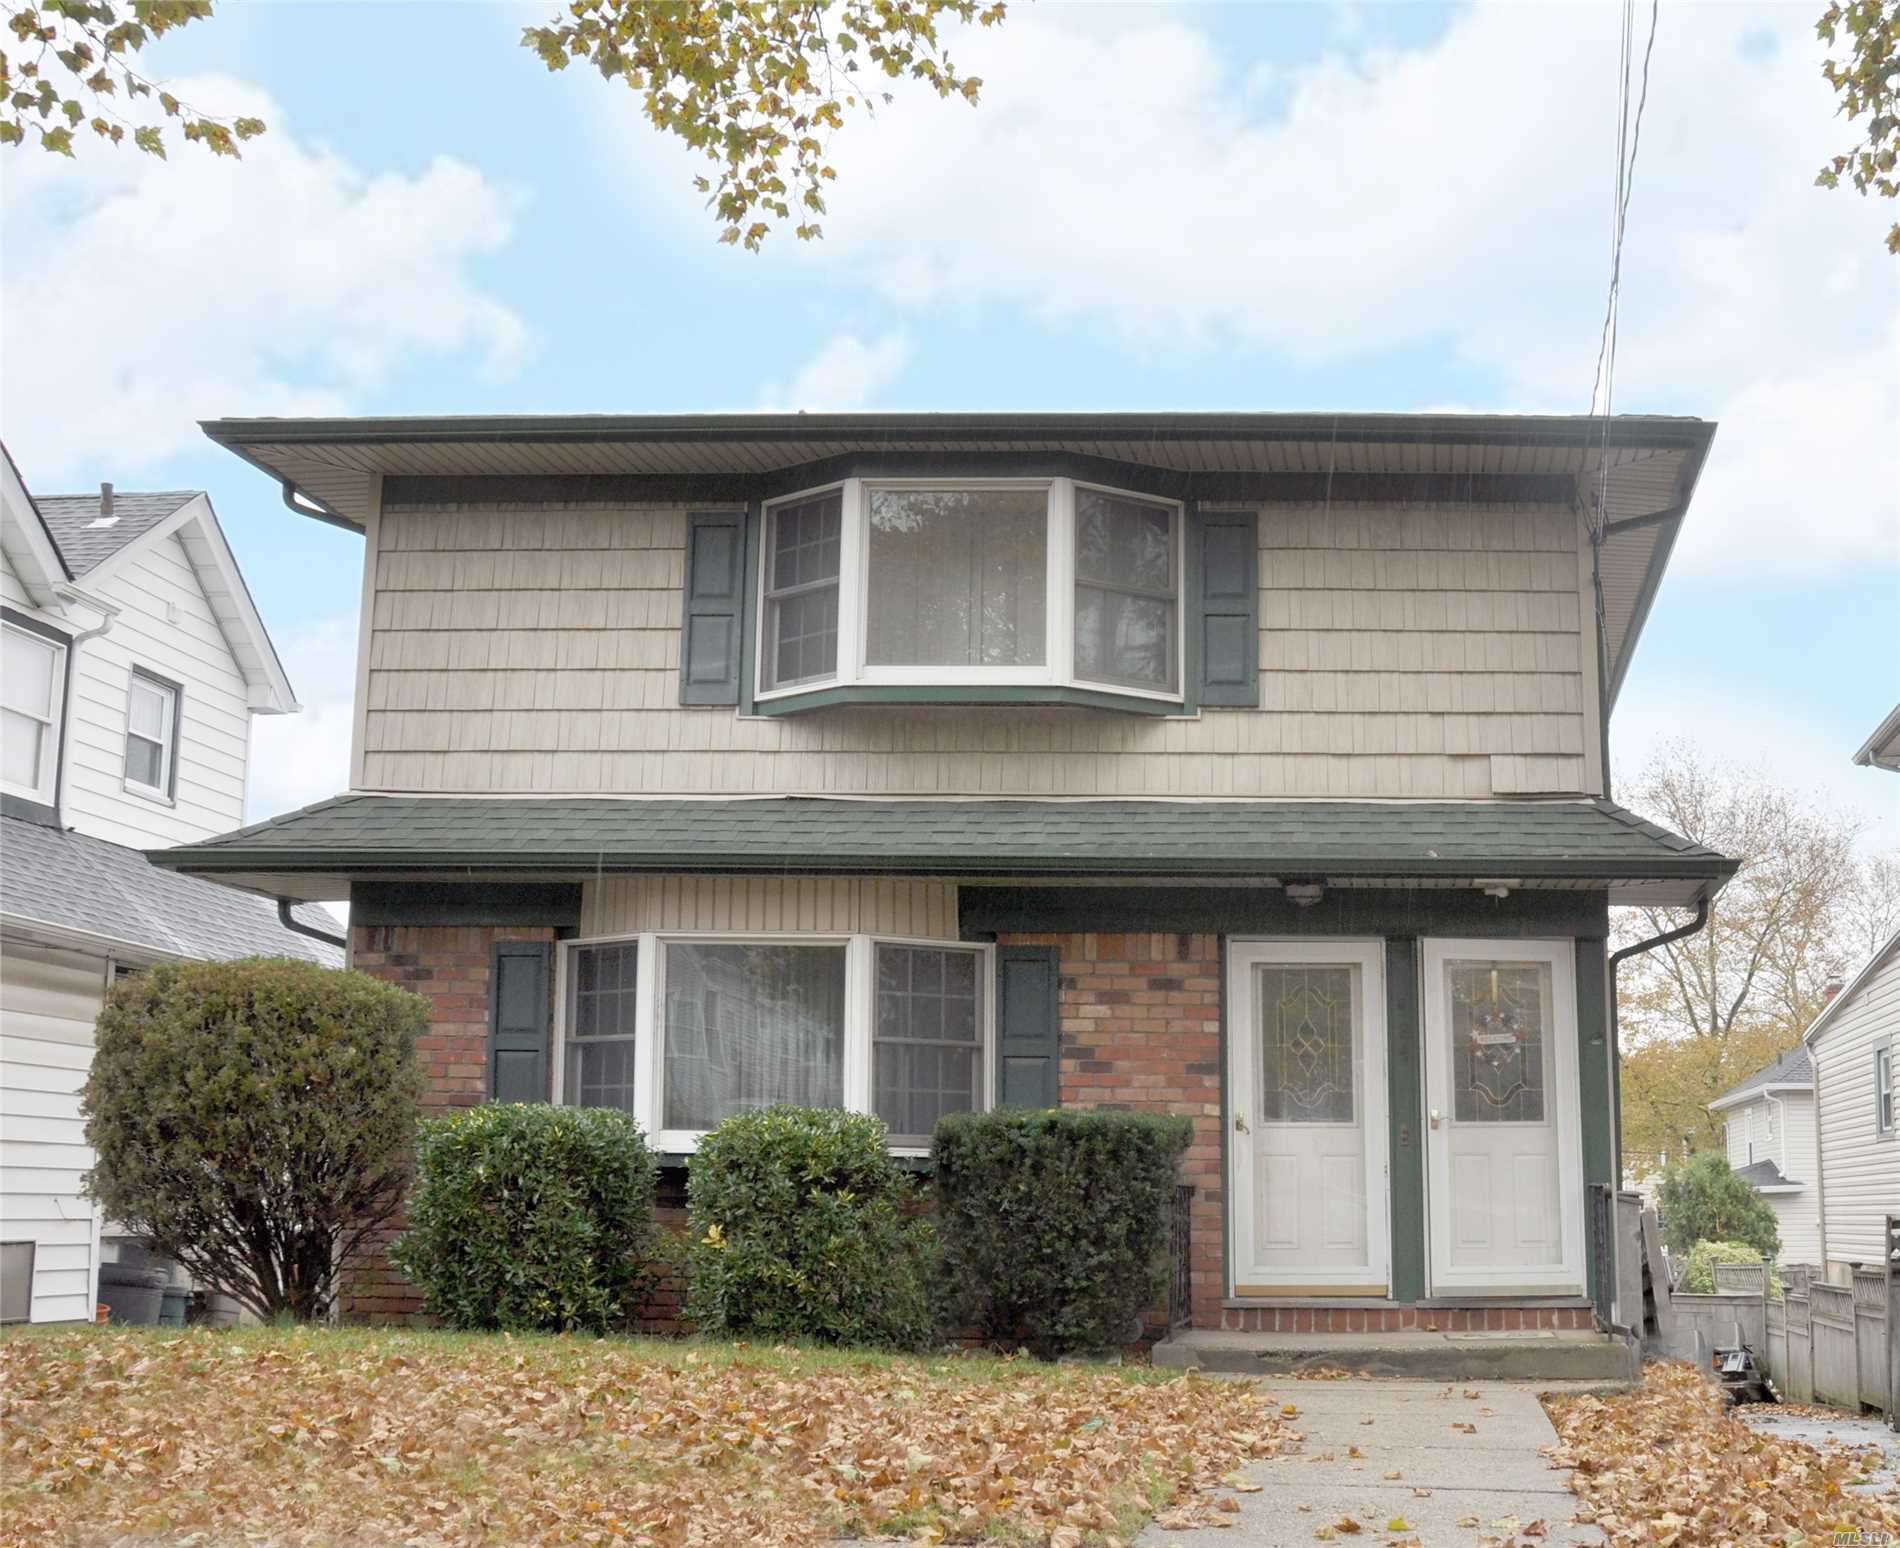 Rare 2 Family House In The Village Of Williston Park. 1, 100 Sq. Feet Of Living Space On Each Level. Each Floor Has A Living Room, Dining Room, Kitchen, Full Bath, And 3 Bedrooms. Anderson Windows And Hardwood Floors Throughout. Basement With Ose. Great Opportunity For An Investor Or Extended Family.